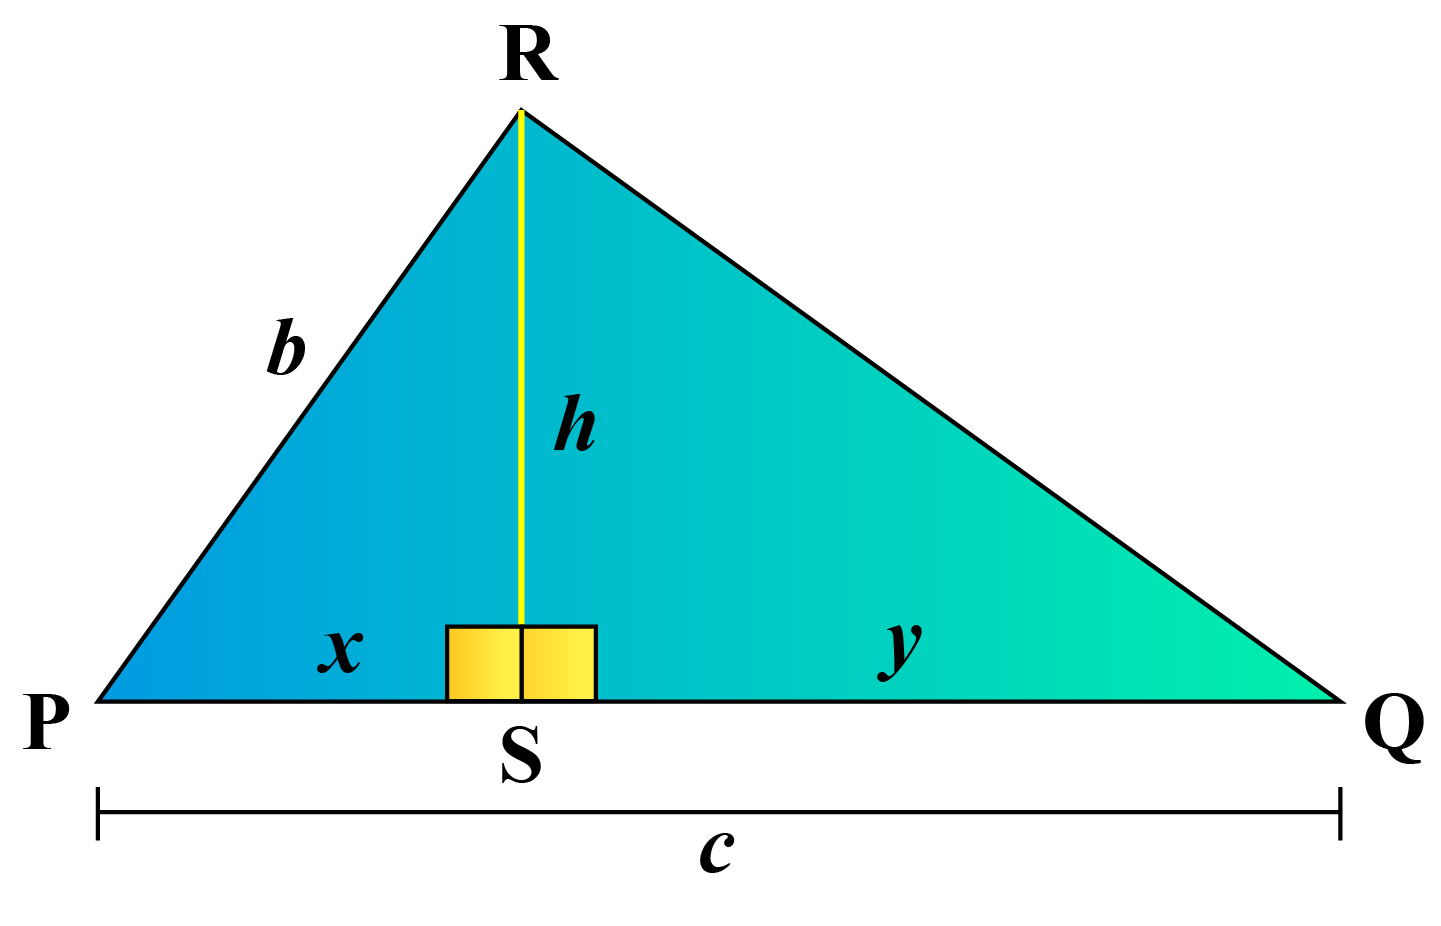 How to measure the altitude of a right triangle - Quora